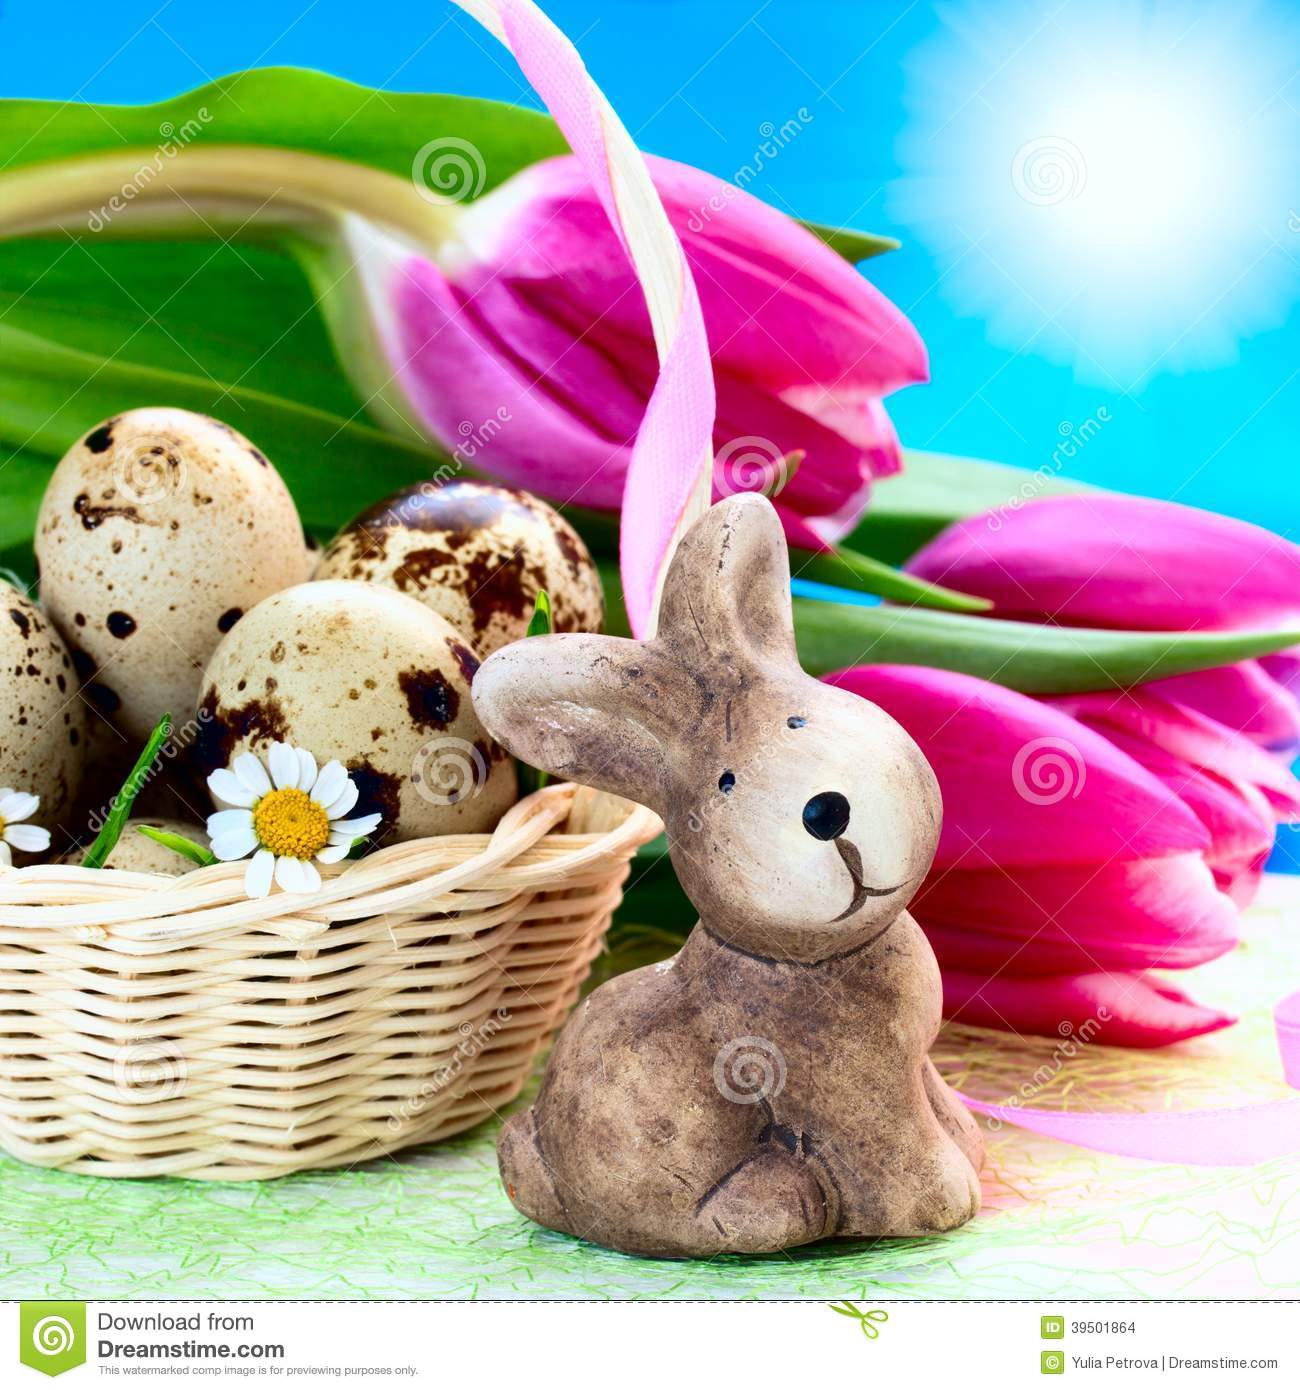 Easter eggs in the basket and rabbit